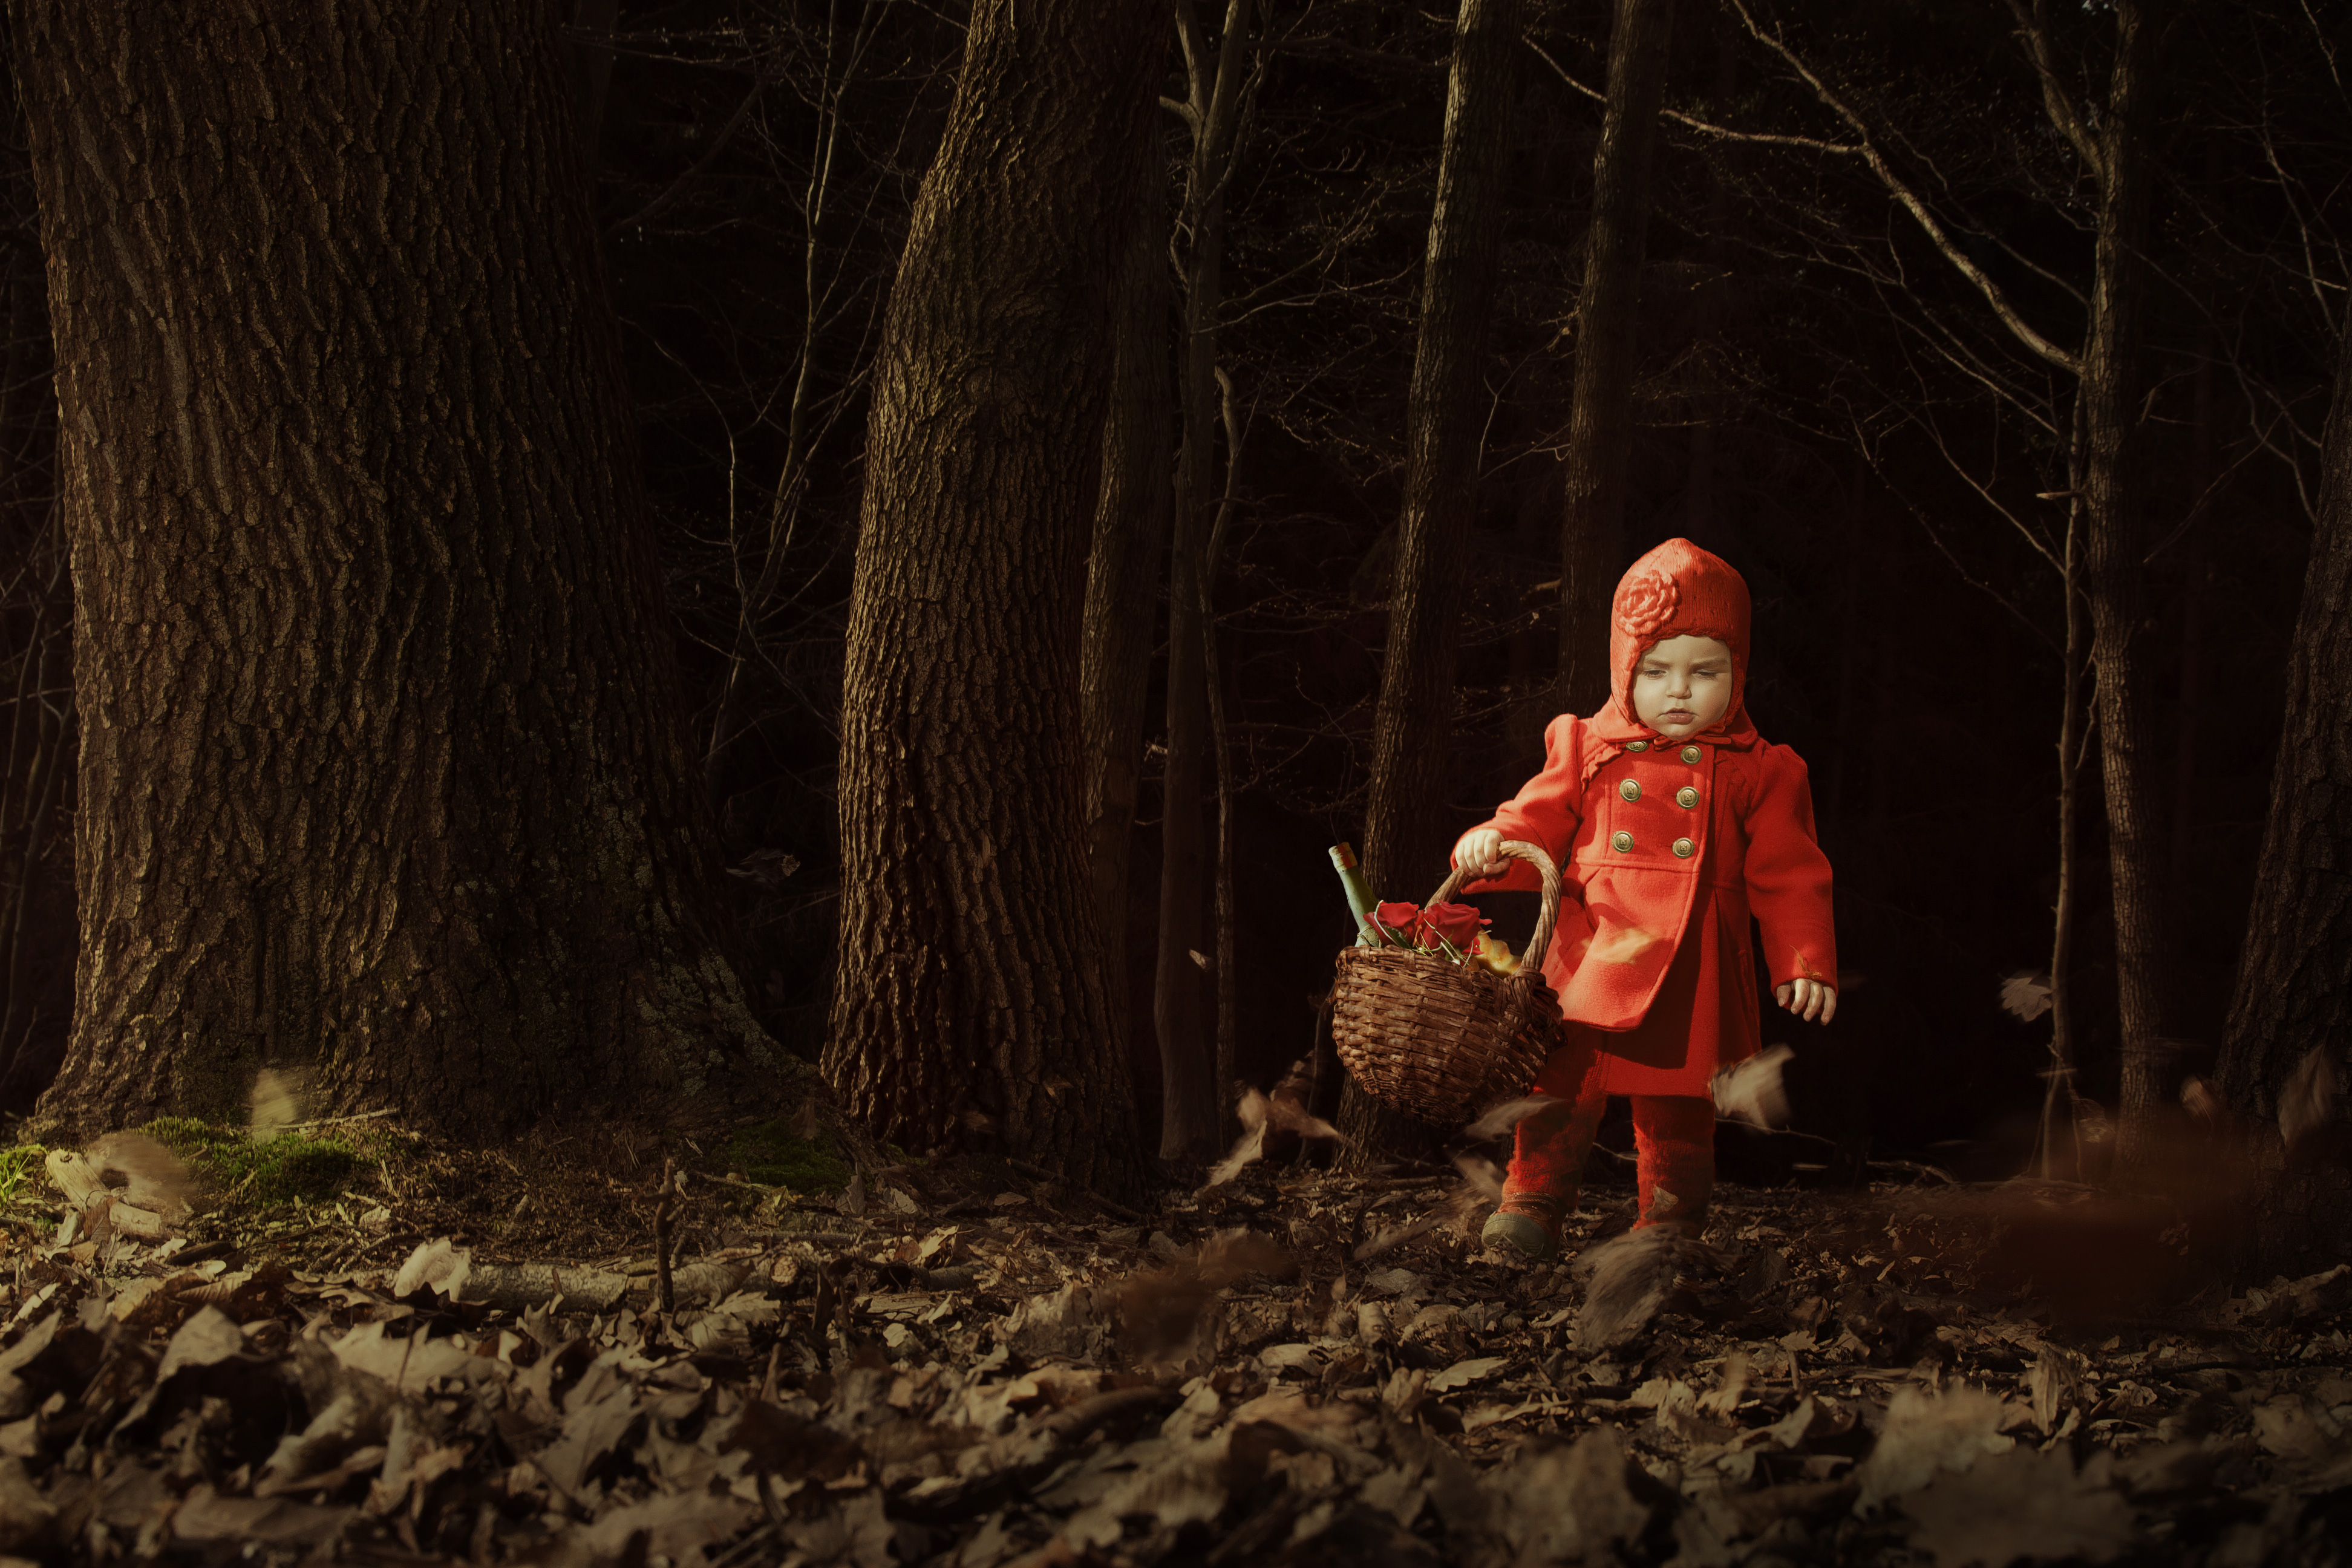 THE RED RIDINGHOOD